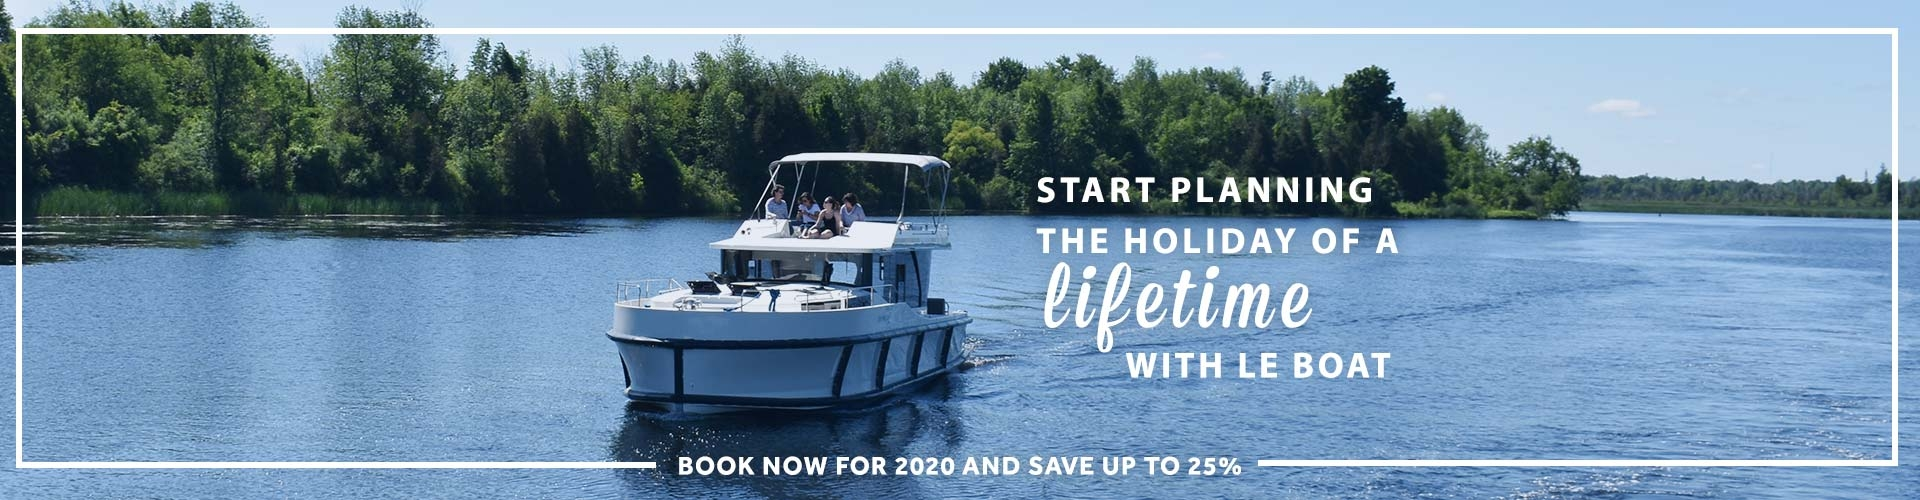 Start planning the holiday of a lifetime today!